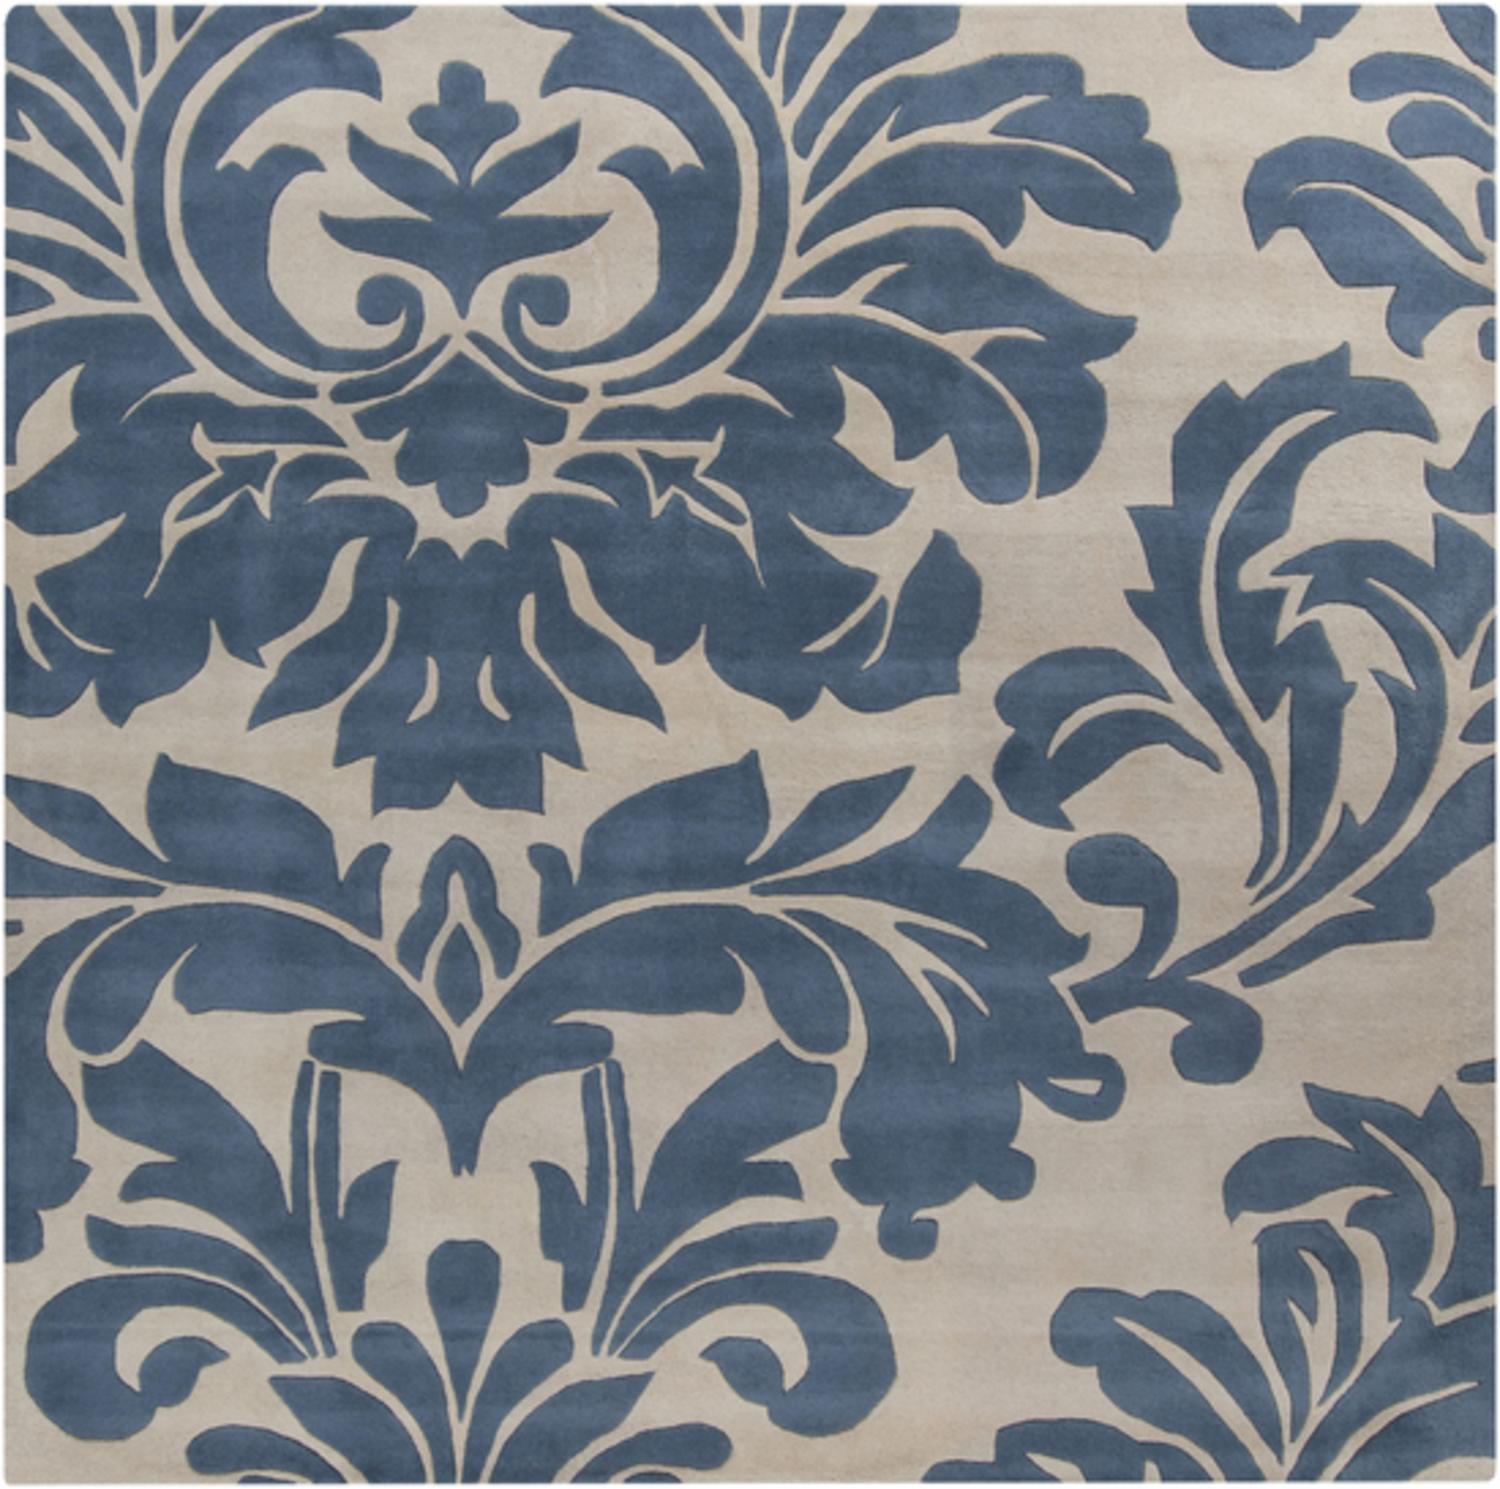 4' x 4' Falling Leaves Damask Slate Blue & Off-White Square Wool Area Throw Rug